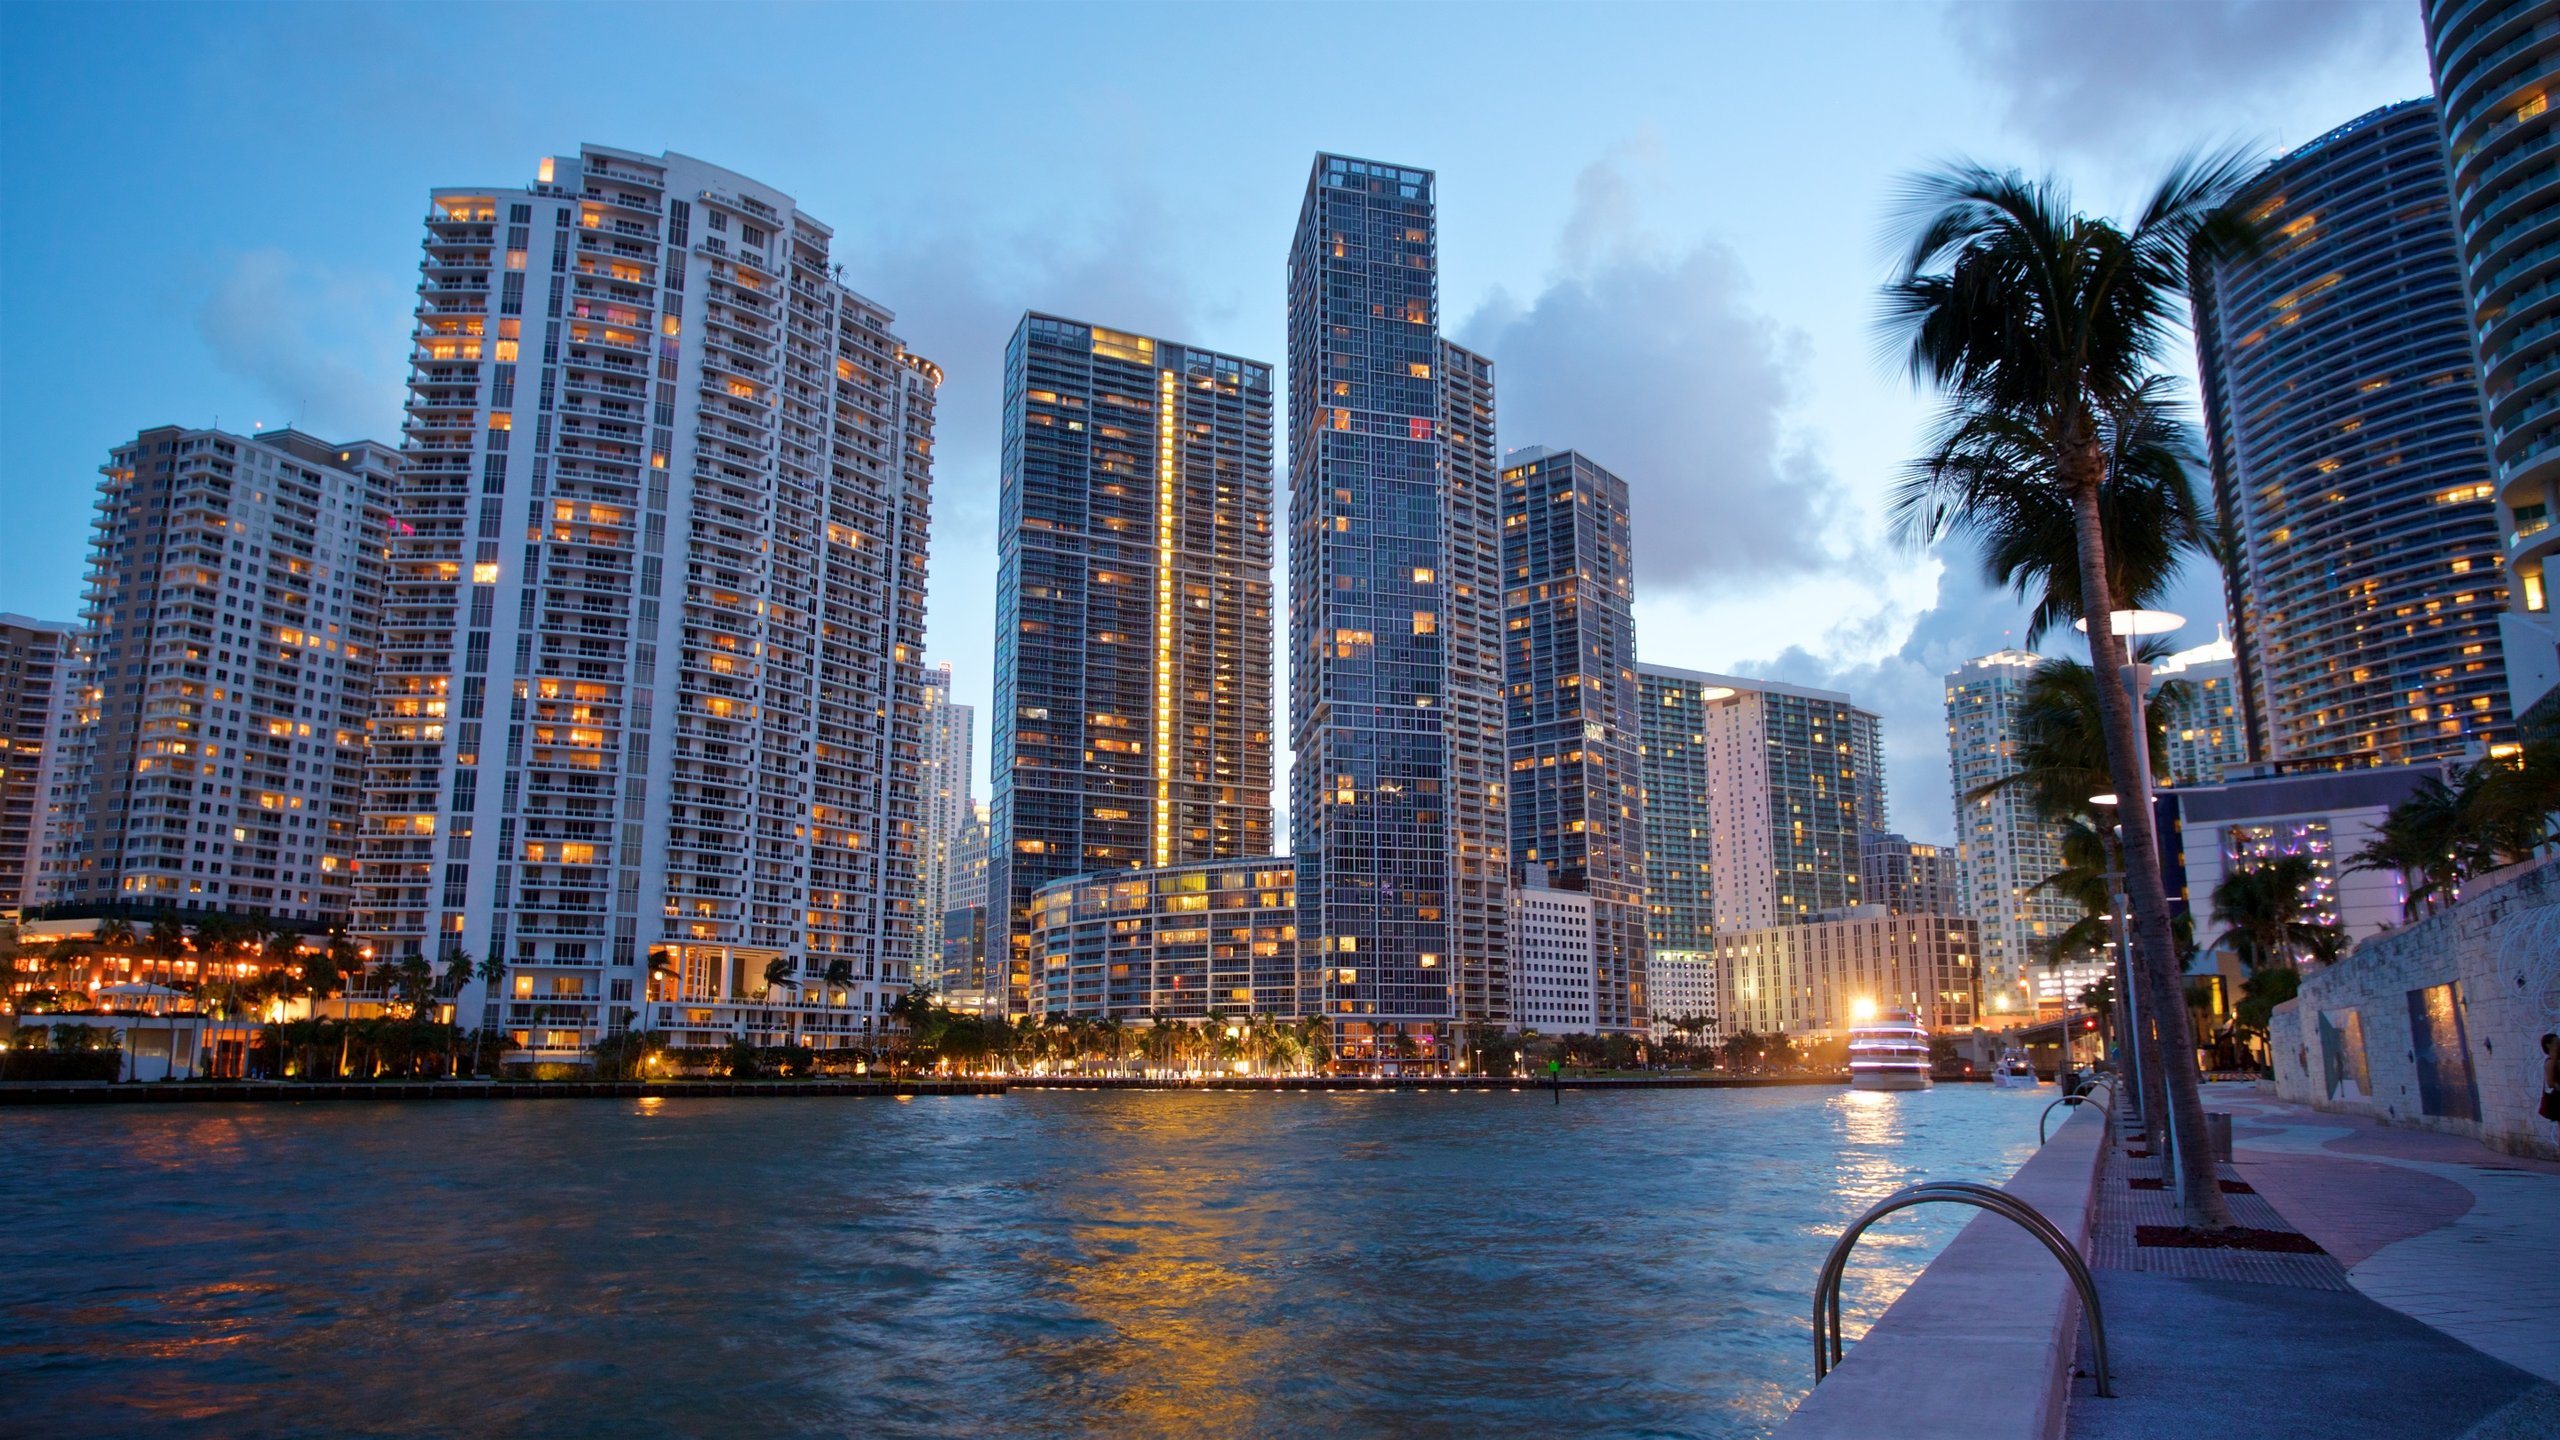 5 Star Hotels in Downtown Miami